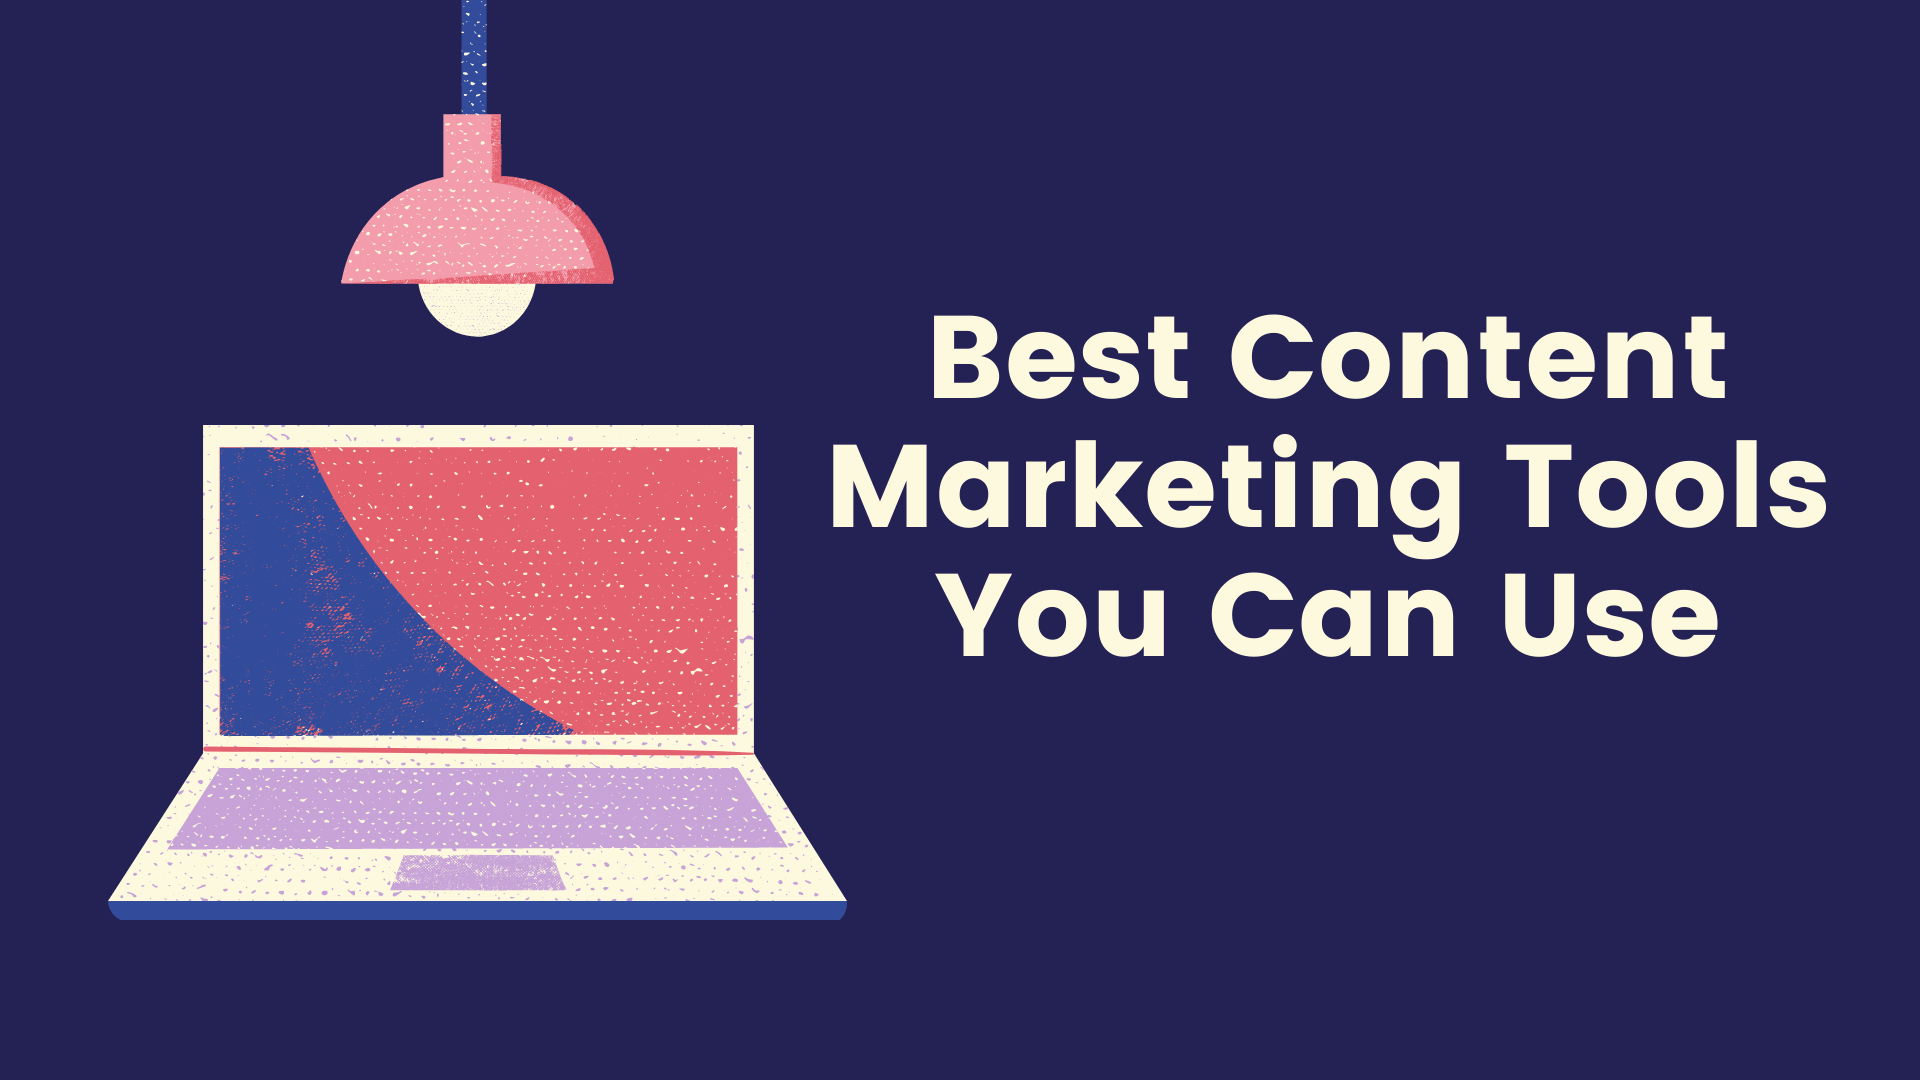 The Best Content Marketing Tools in 2021